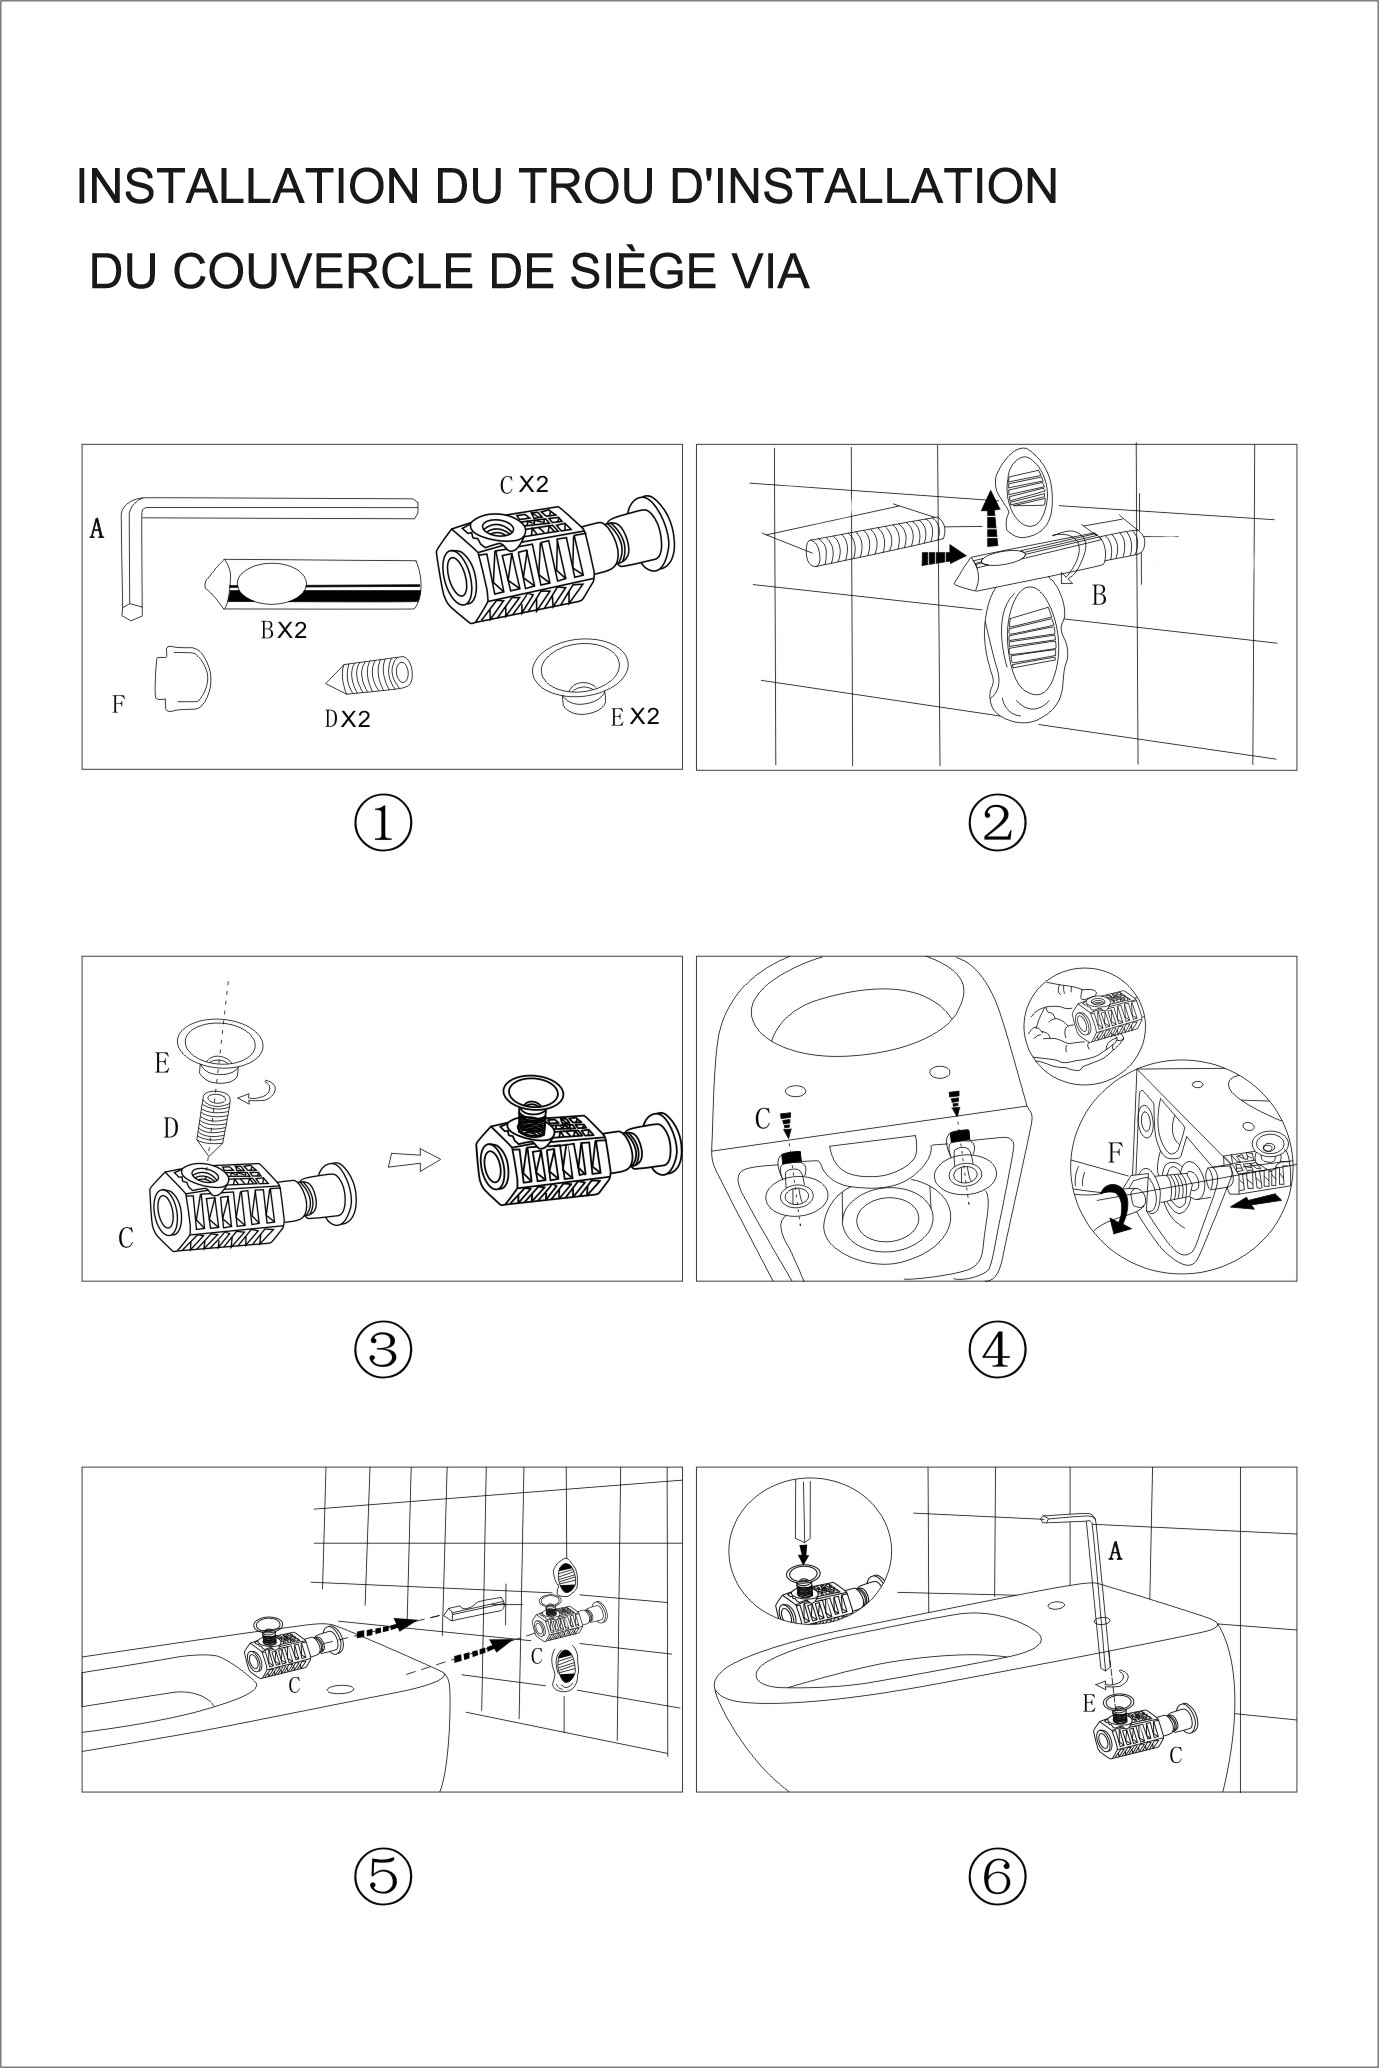 TECHNICAL DRAWING 4. Notice d'installation wc BF24